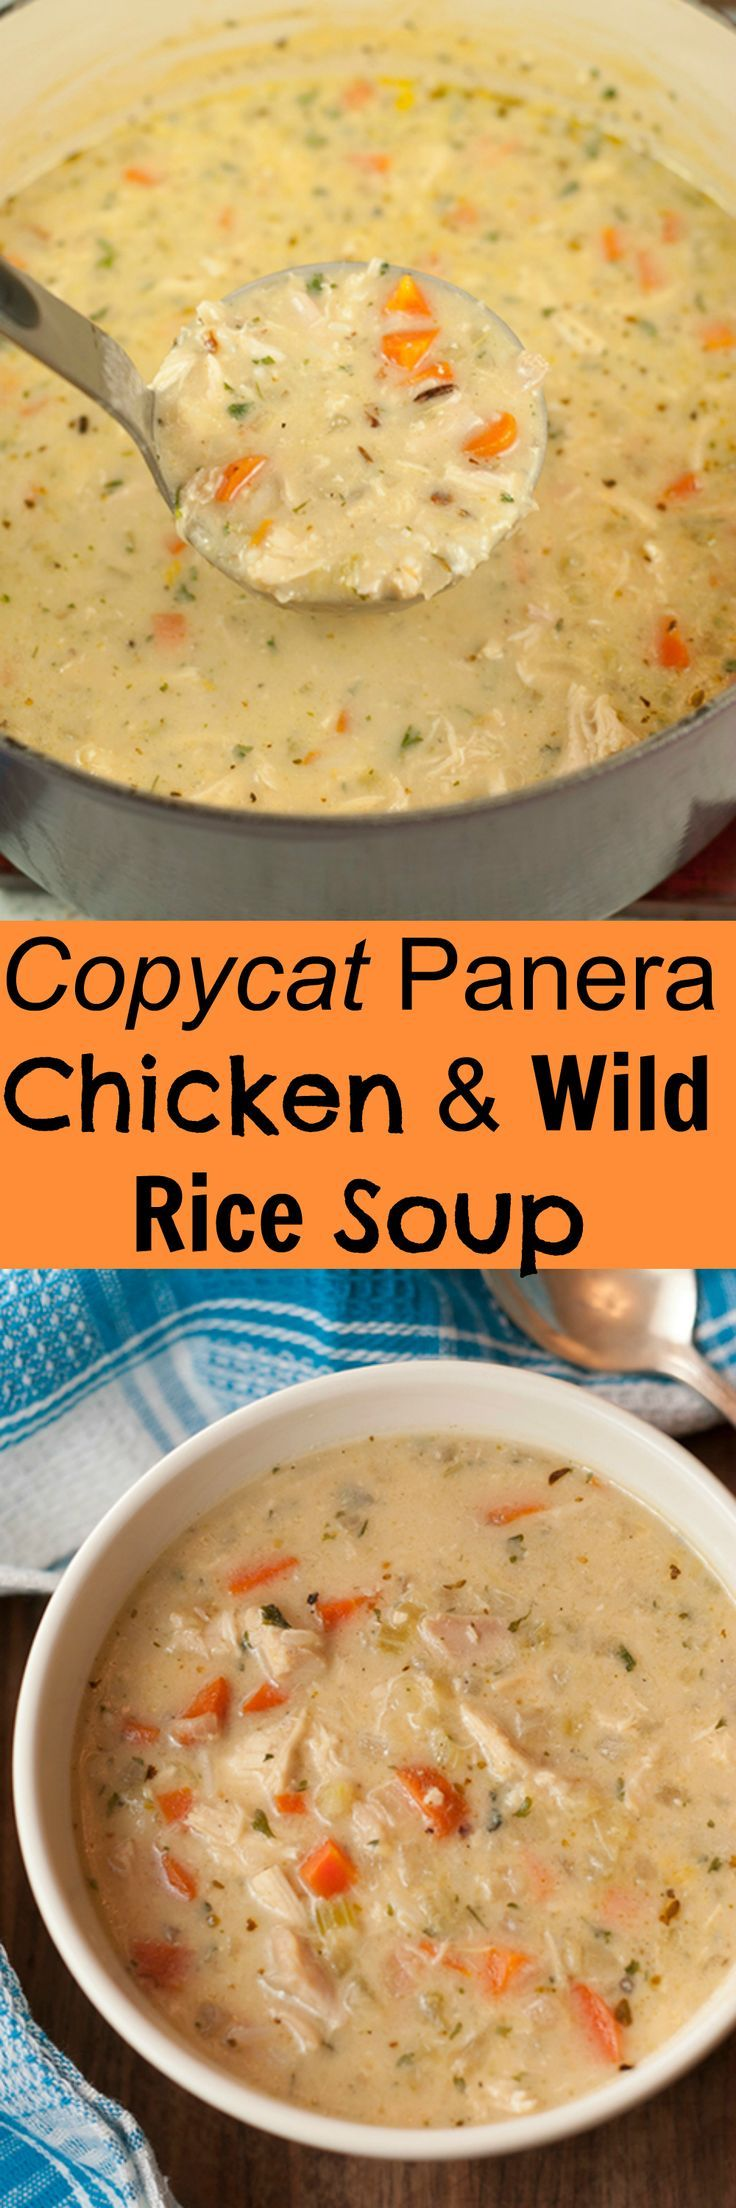 Copycat Panera Chicken & Wild Rice Soup | Wishes and Dishes